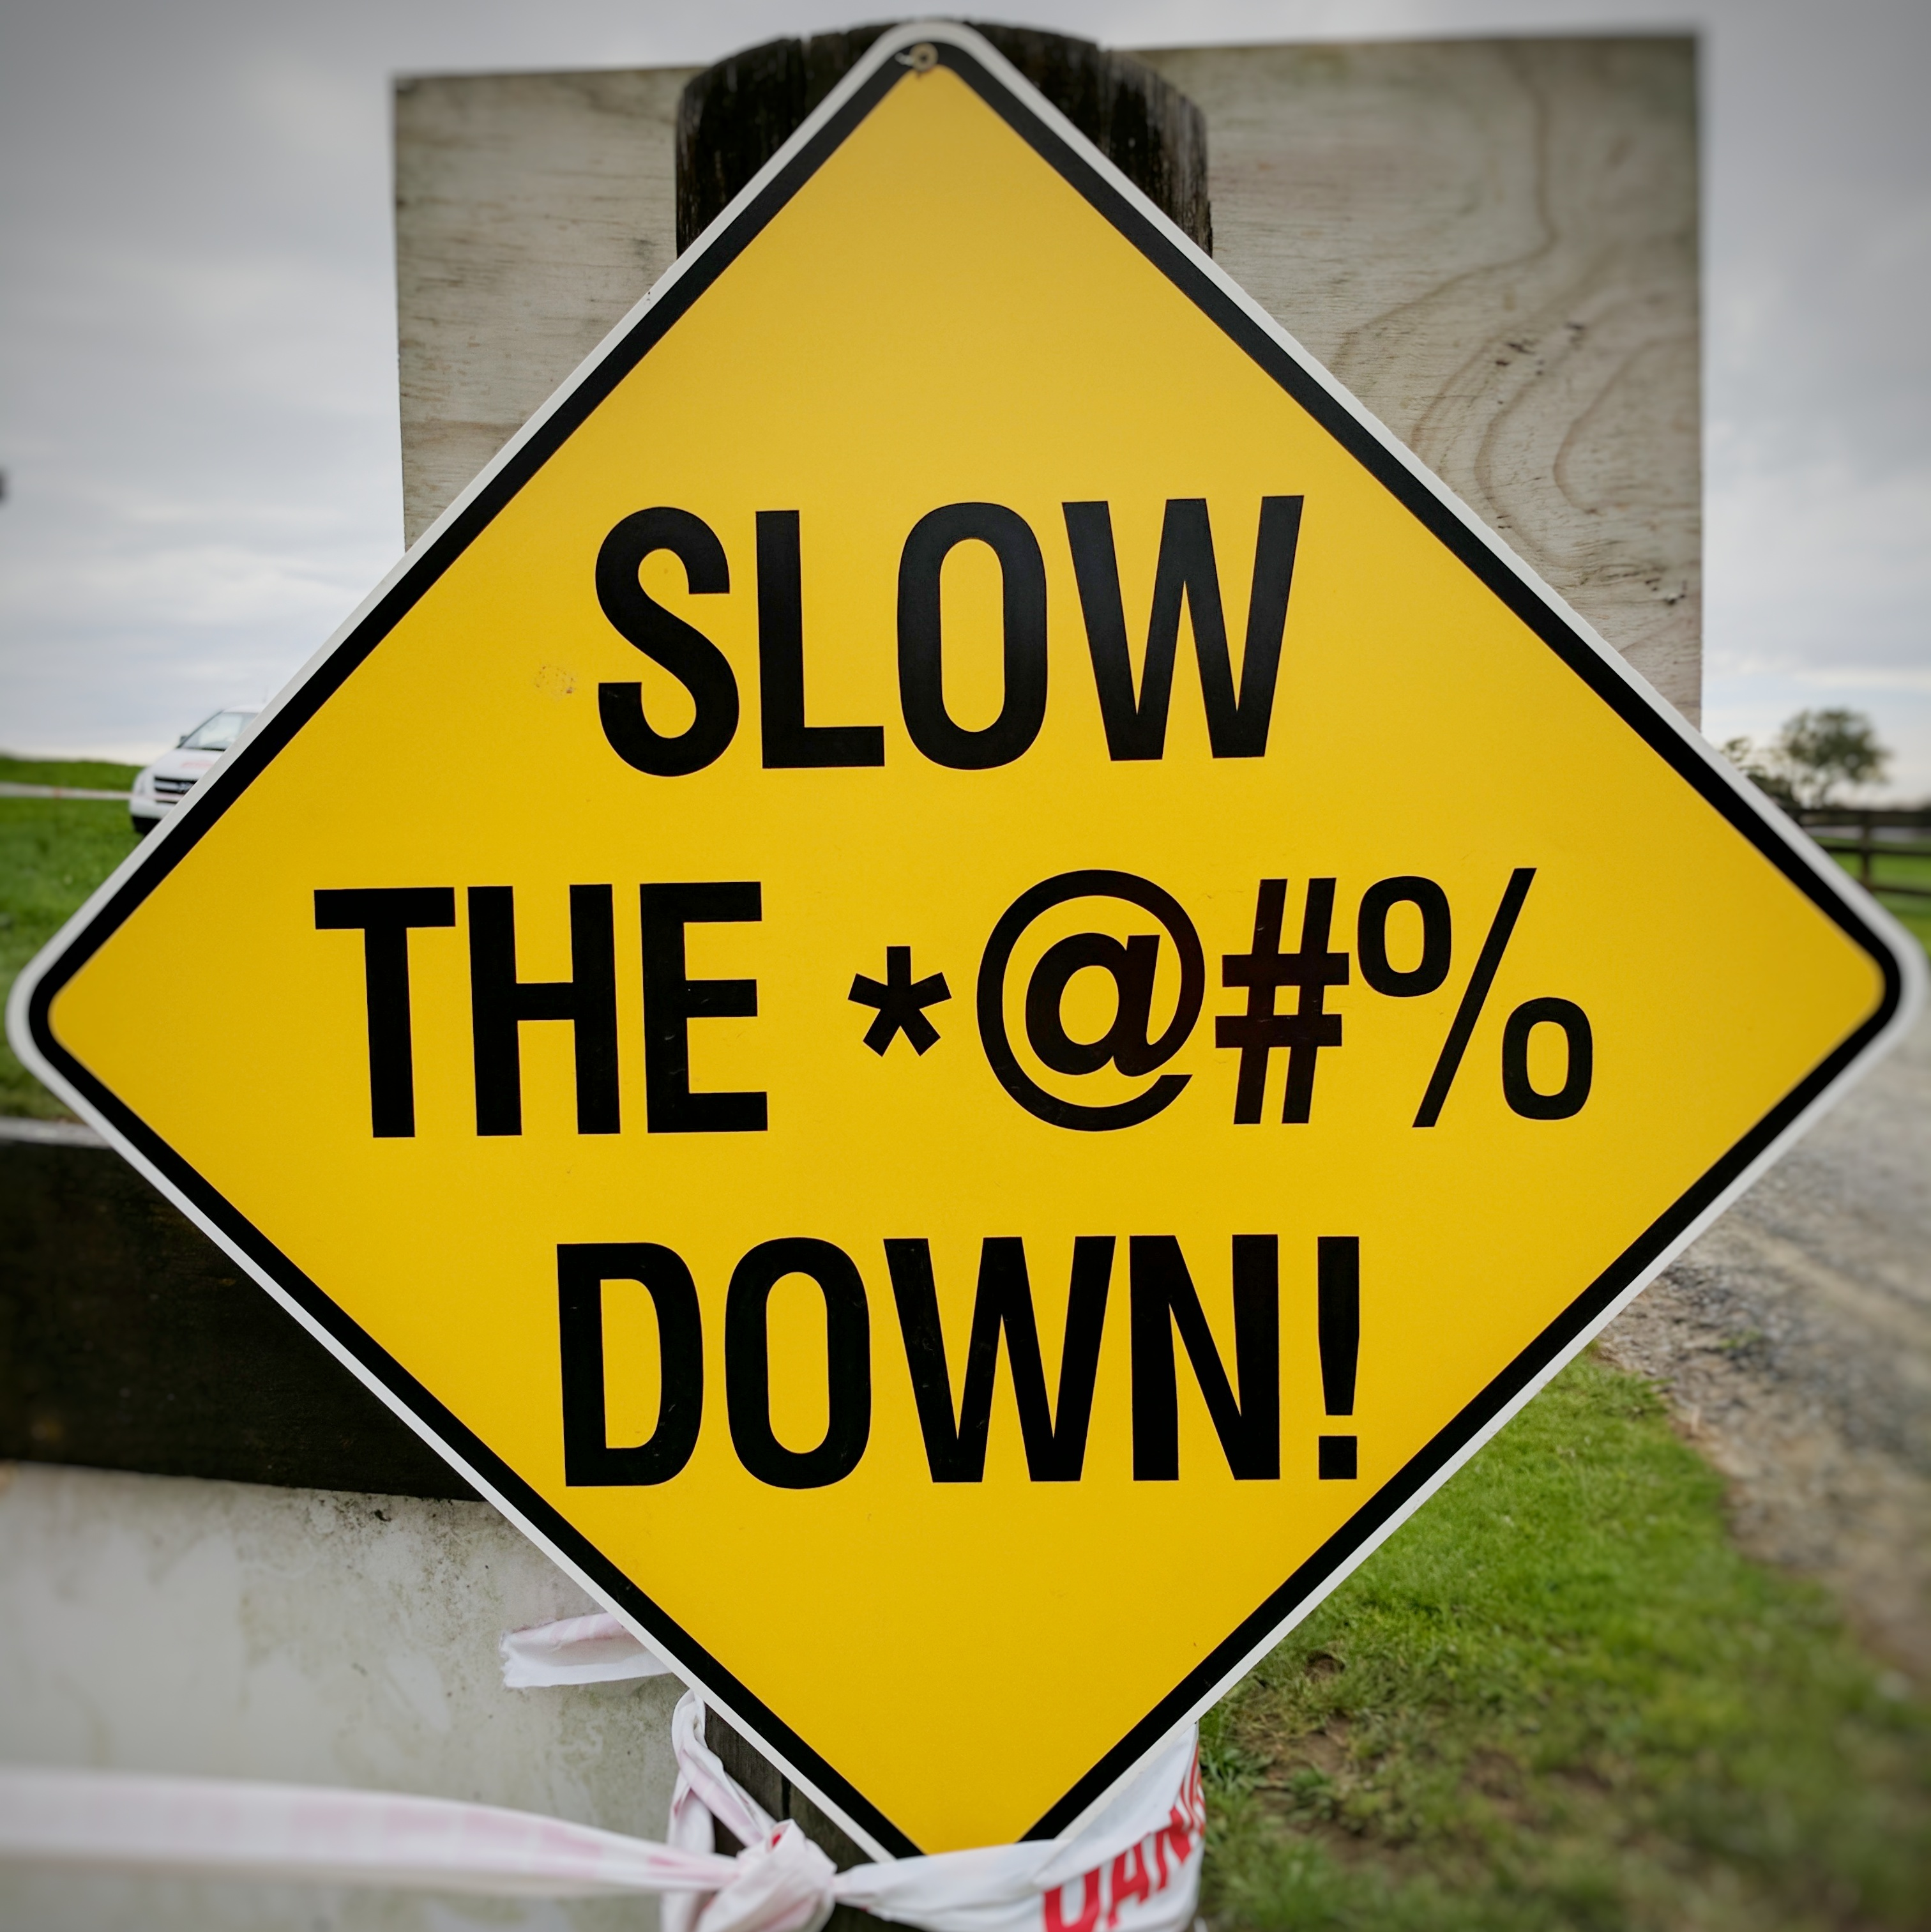 'Slow The *@#% Down' sign